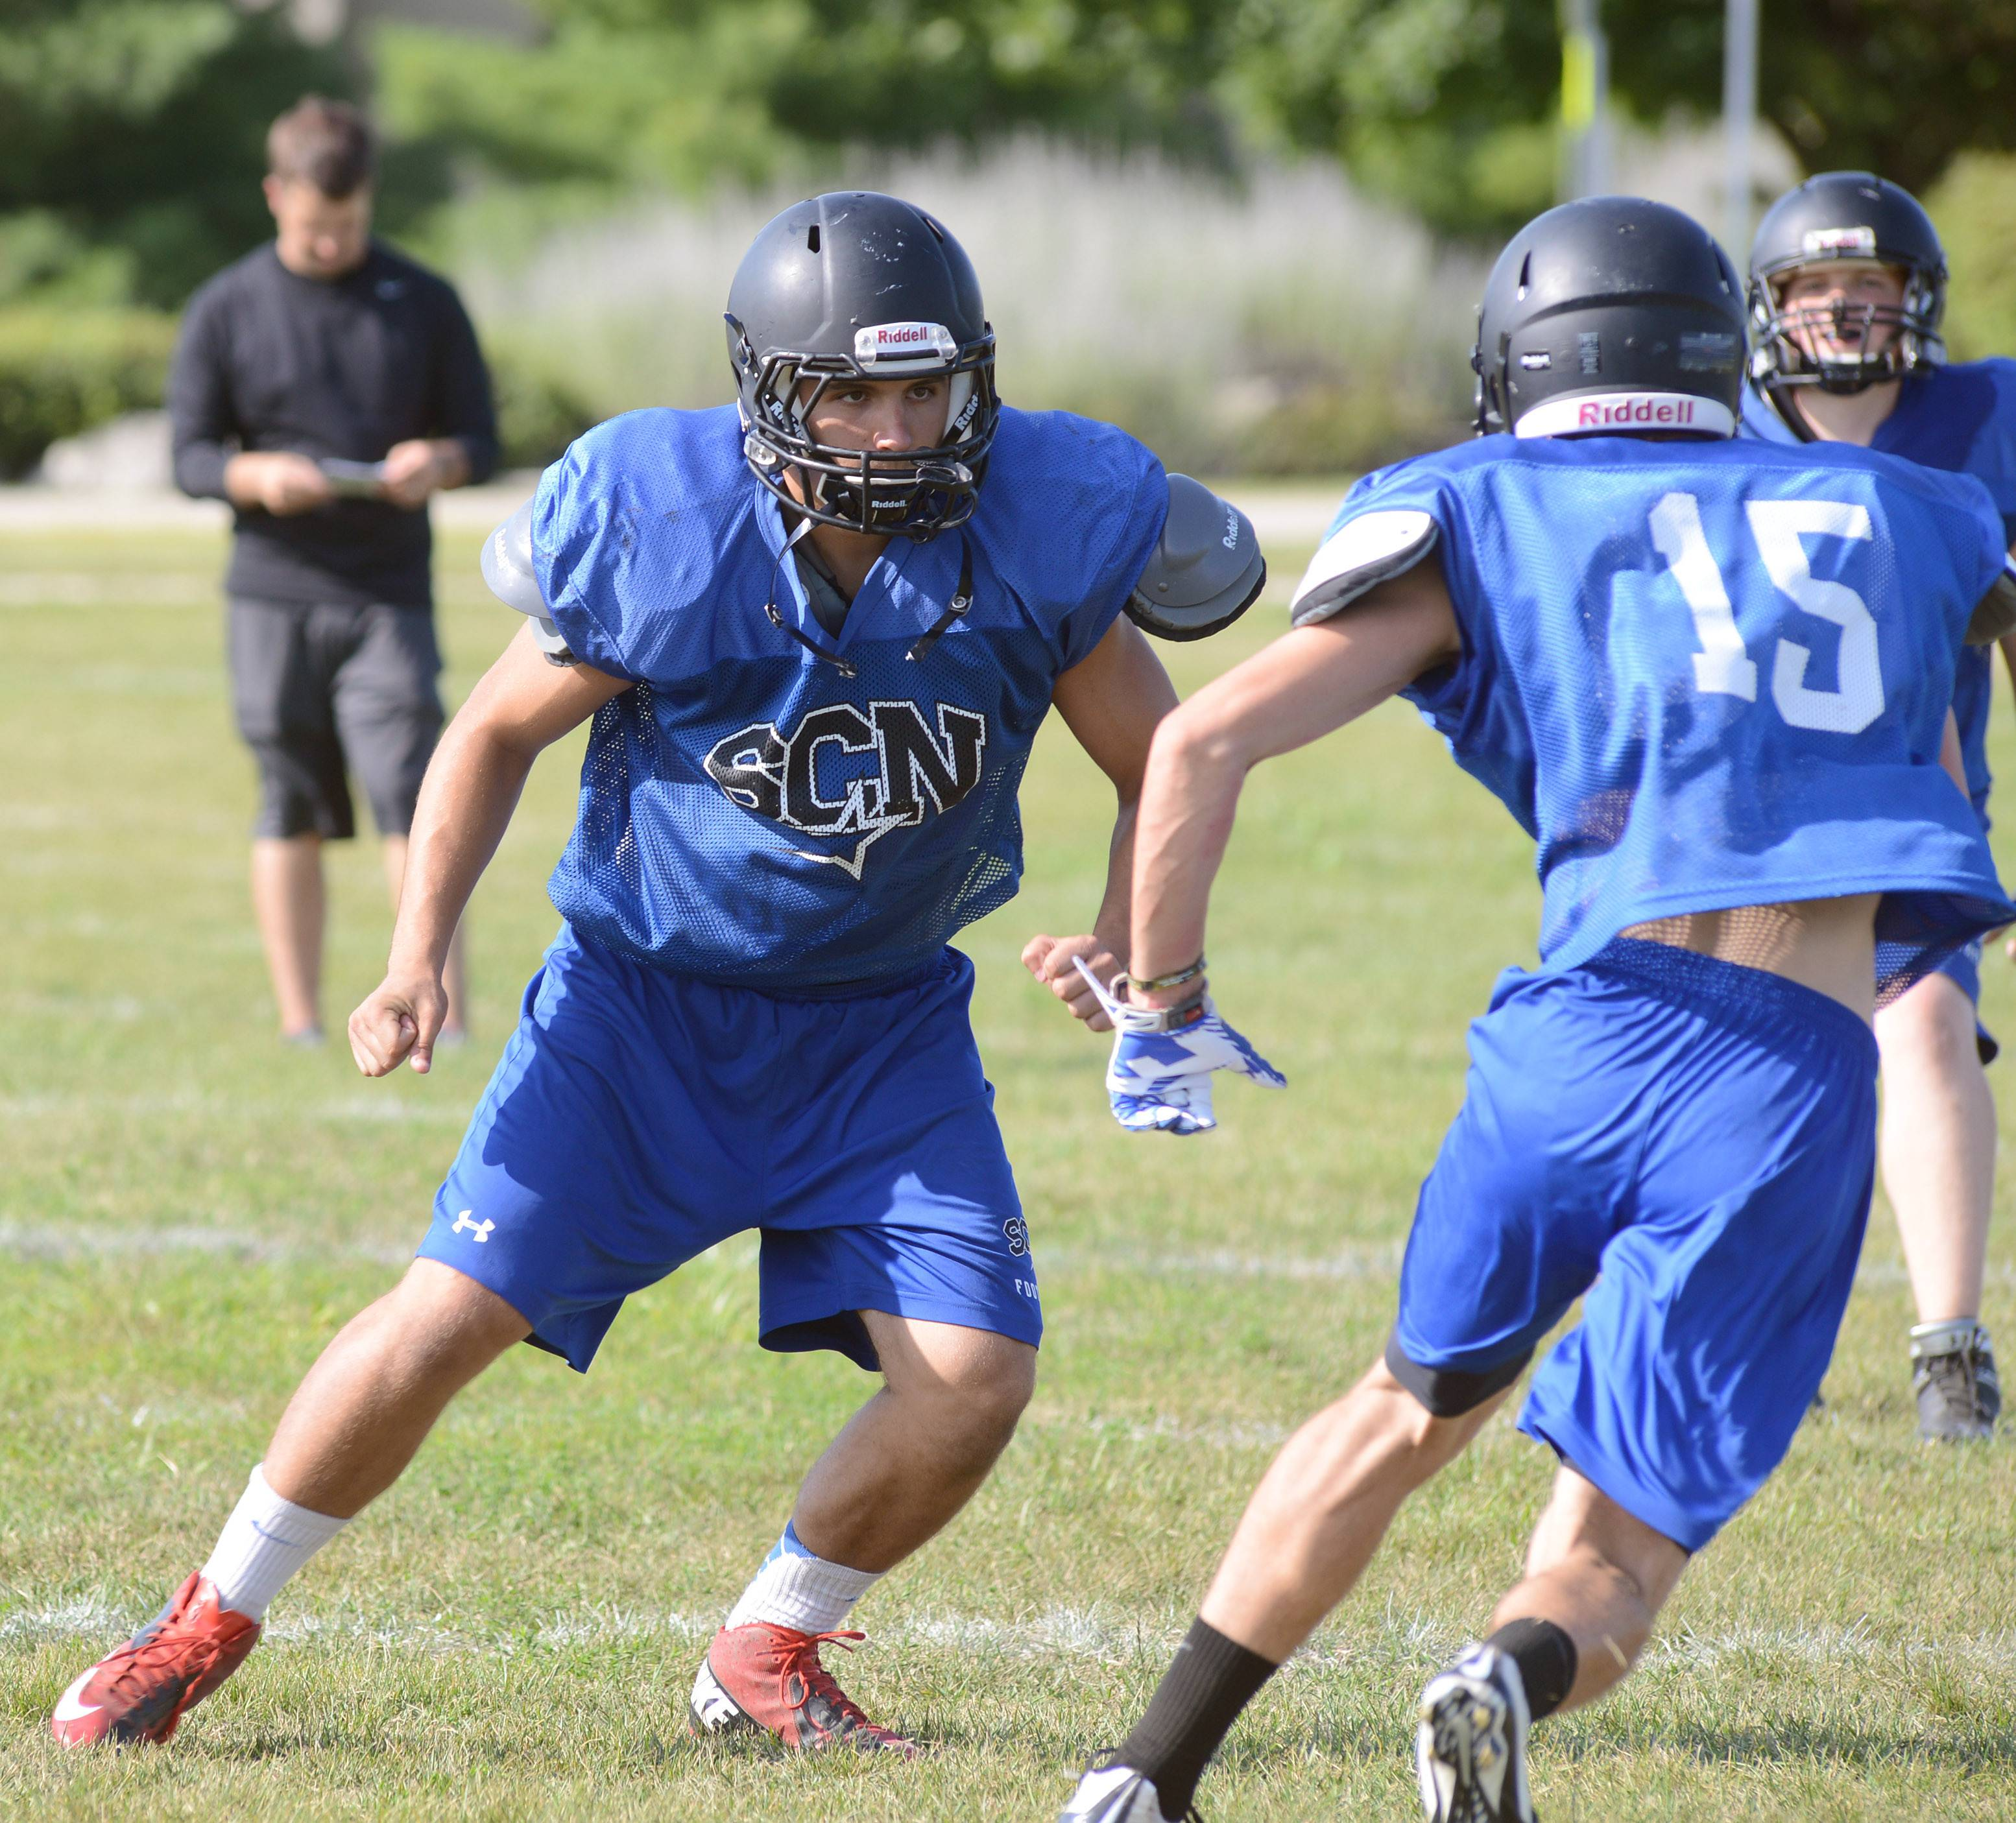 Laura Stoecker/lstoecker@dailyherald.comSt. Charles North junior Dom Sidari, left, during varsity football practice on Friday.